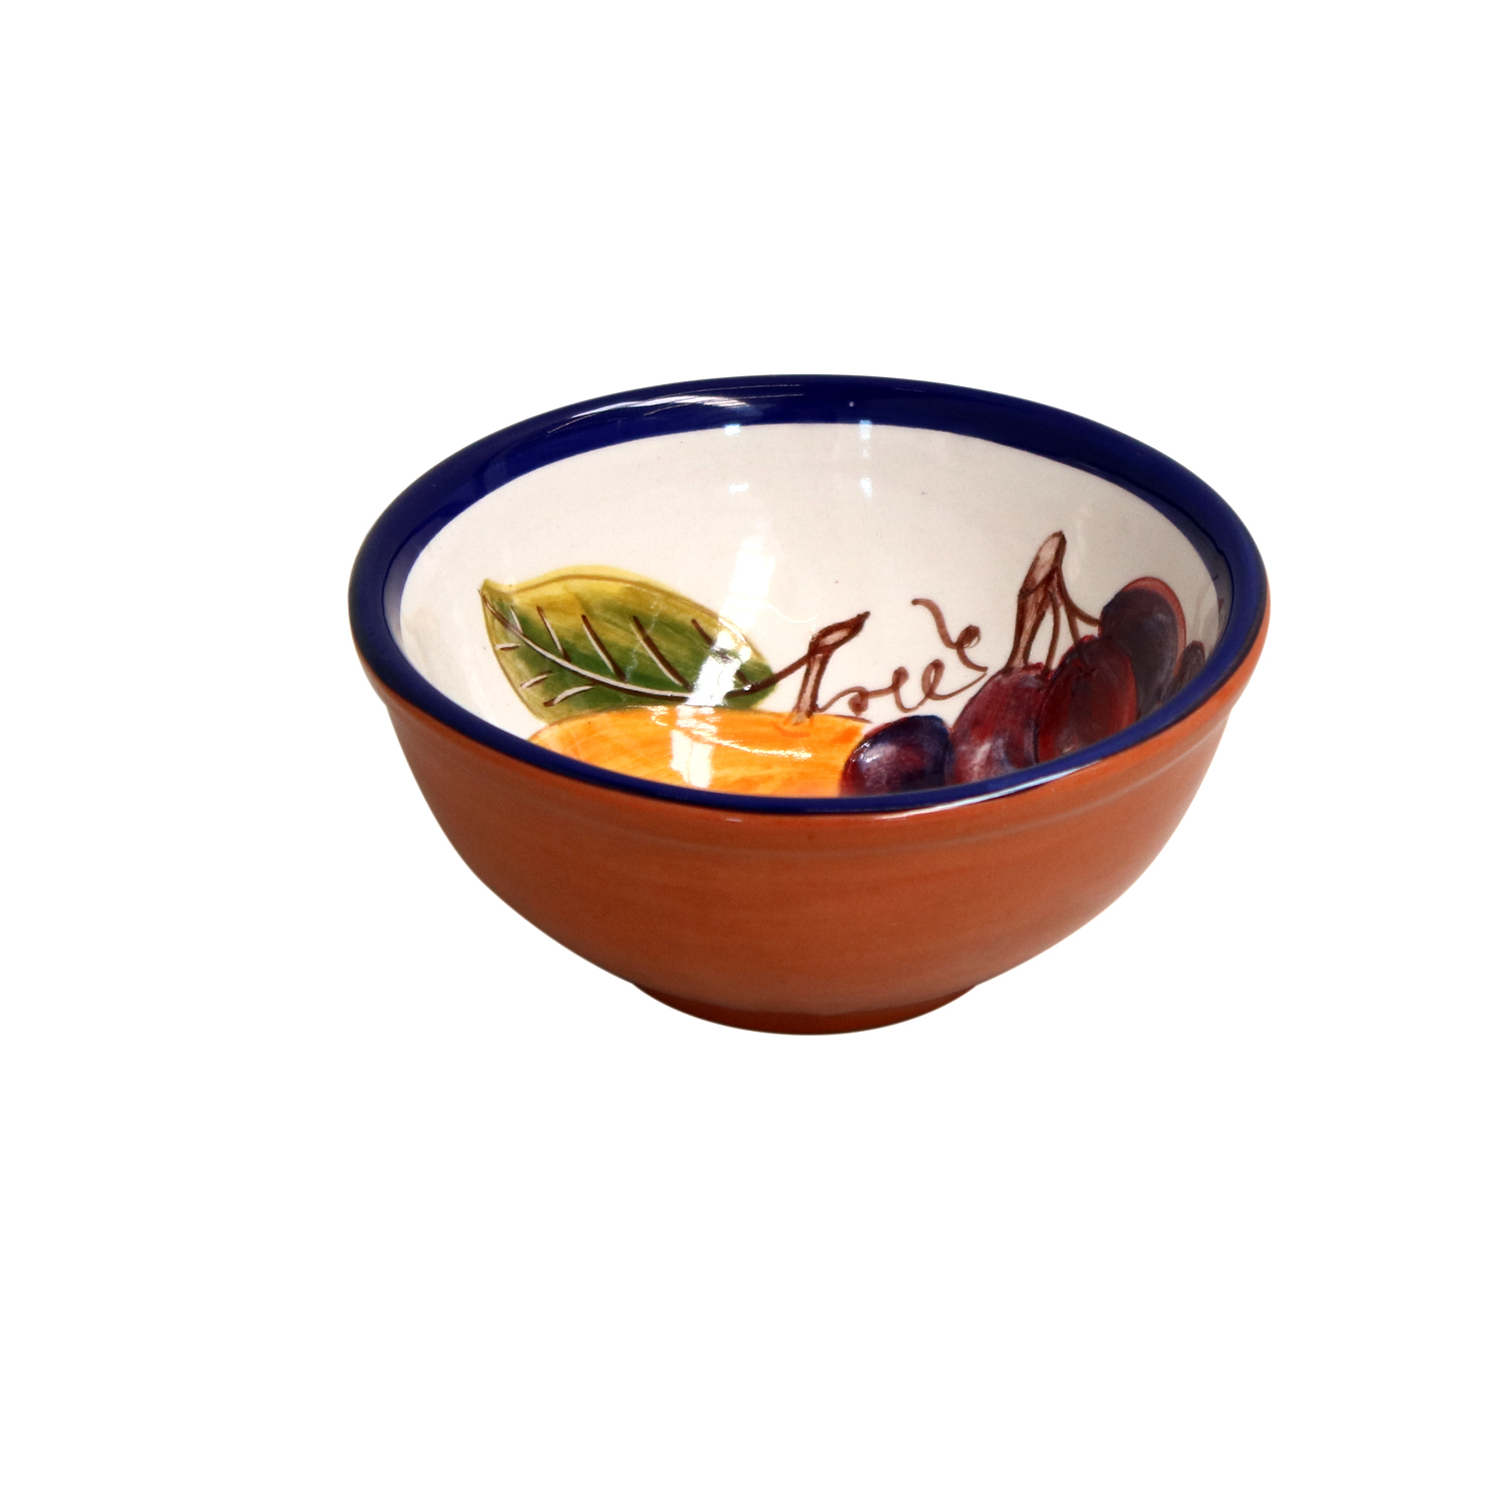 Casafina Alentejo Terracotta Giftware Grape Dip Bowl